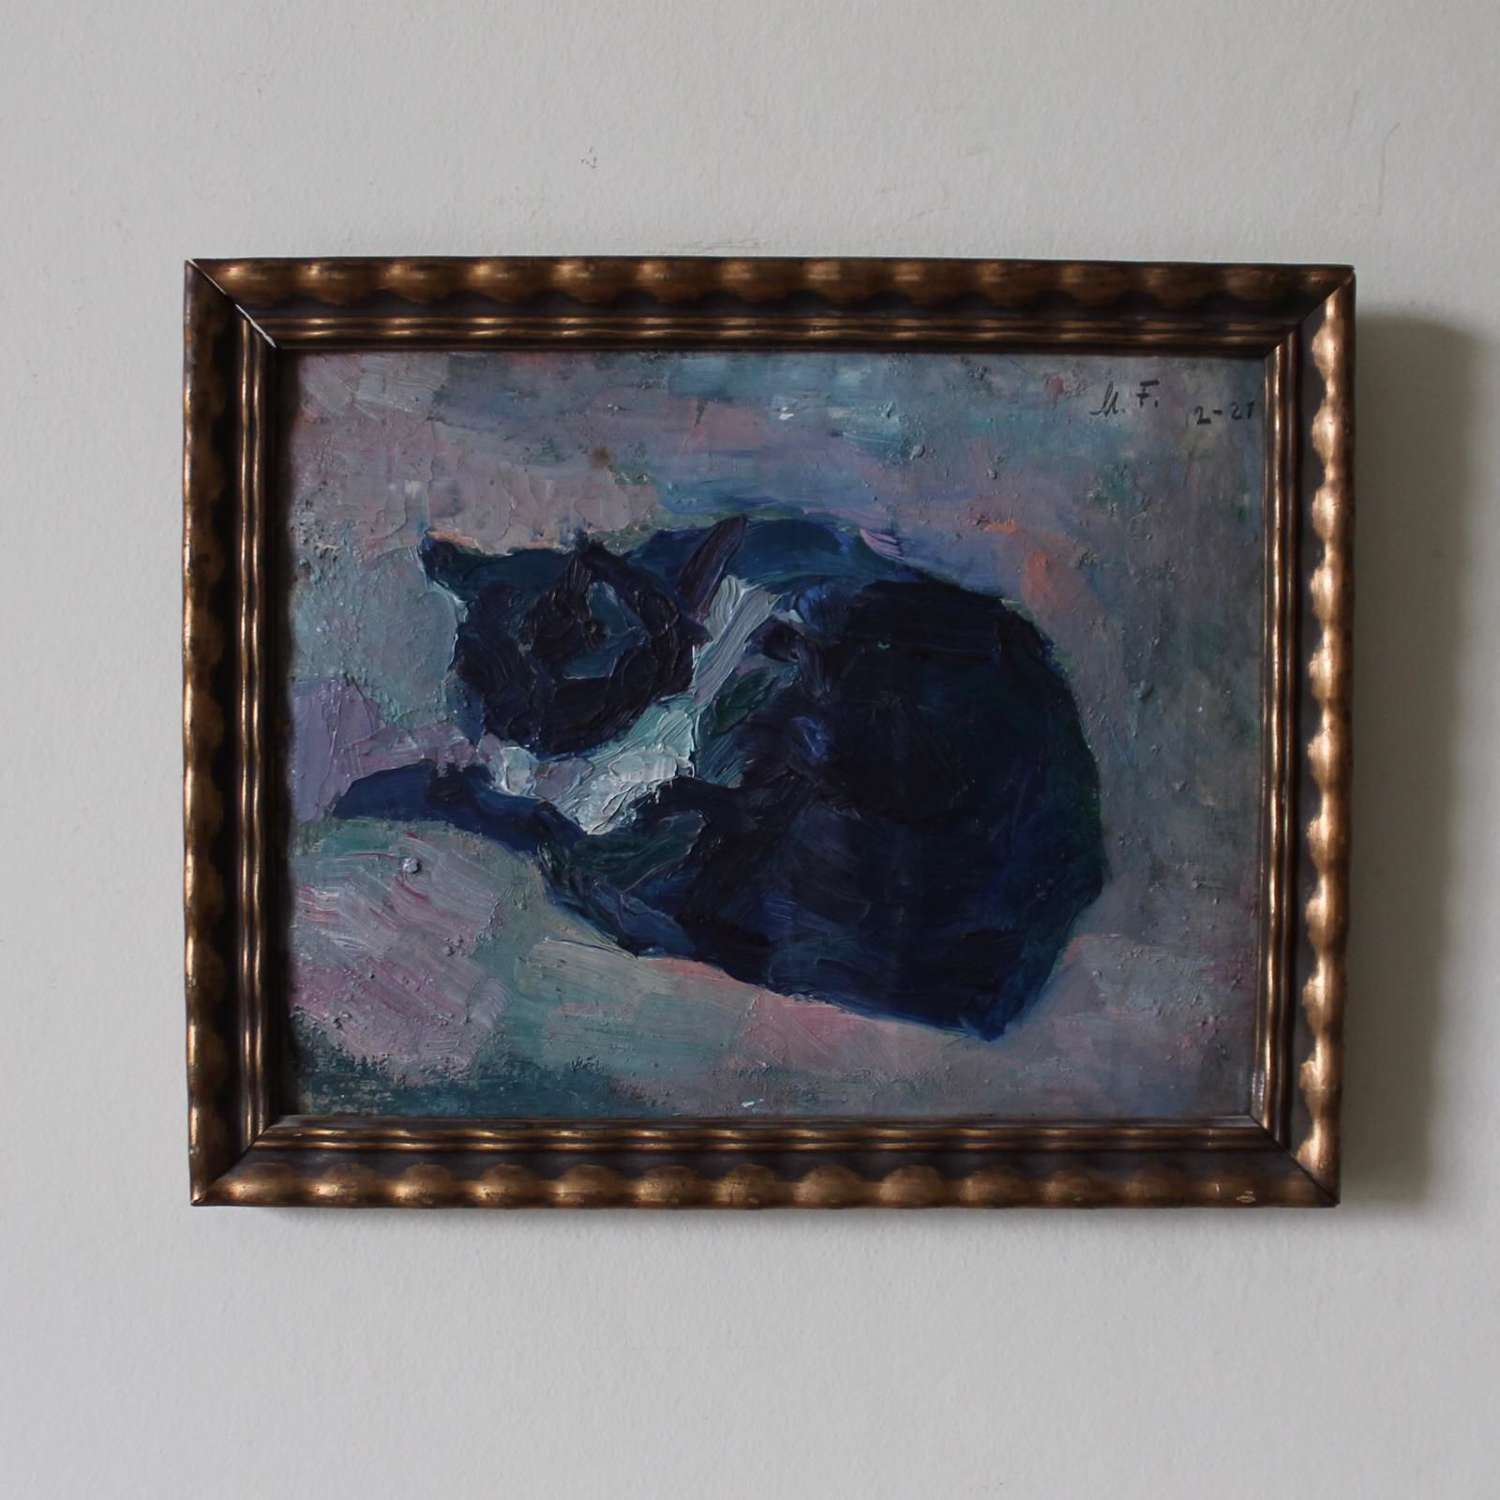 Study of a Sleeping Cat